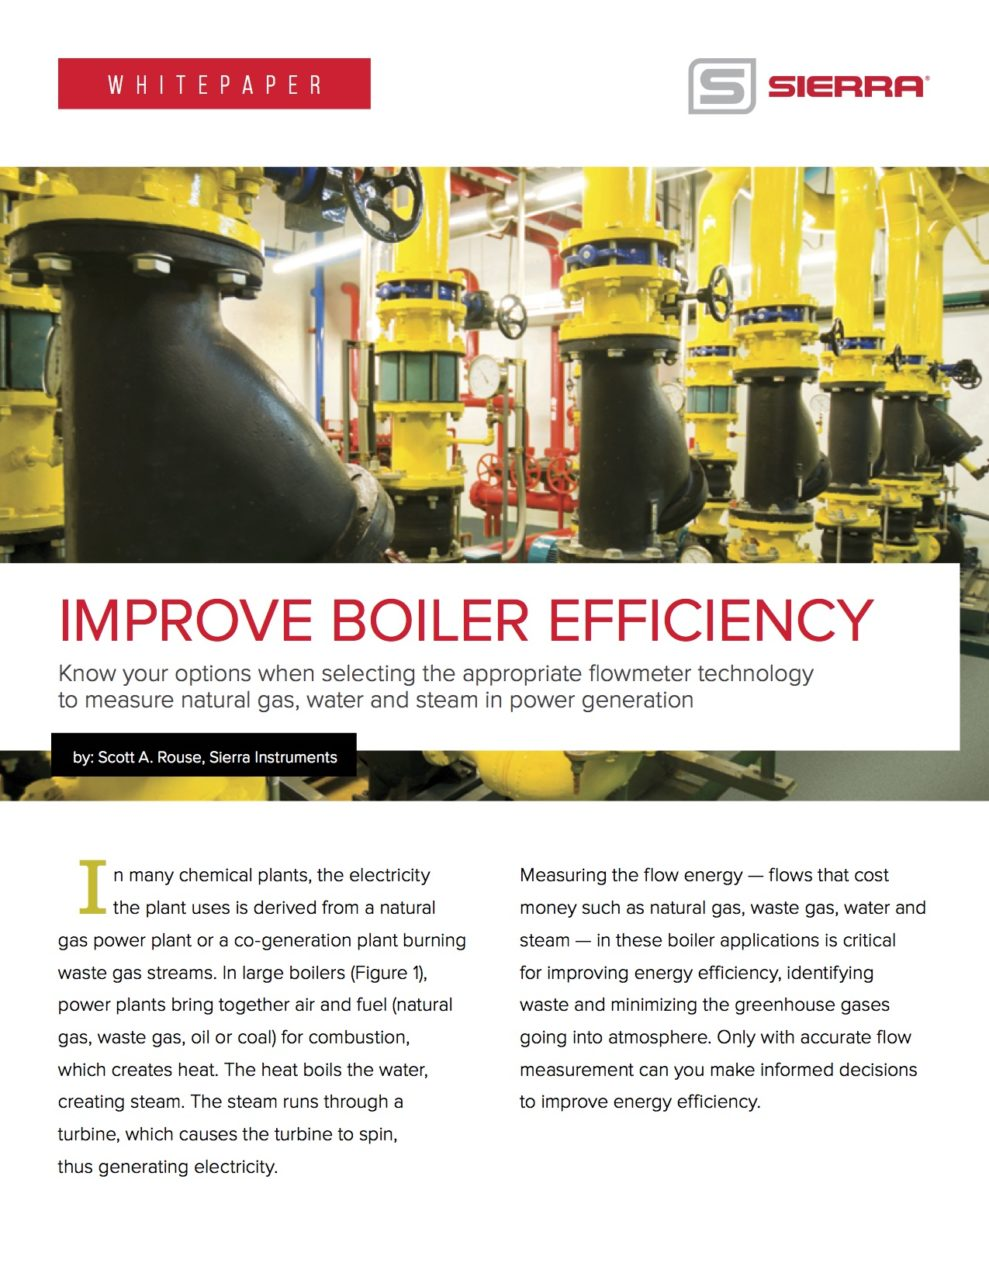 Improve Boiler Efficiency